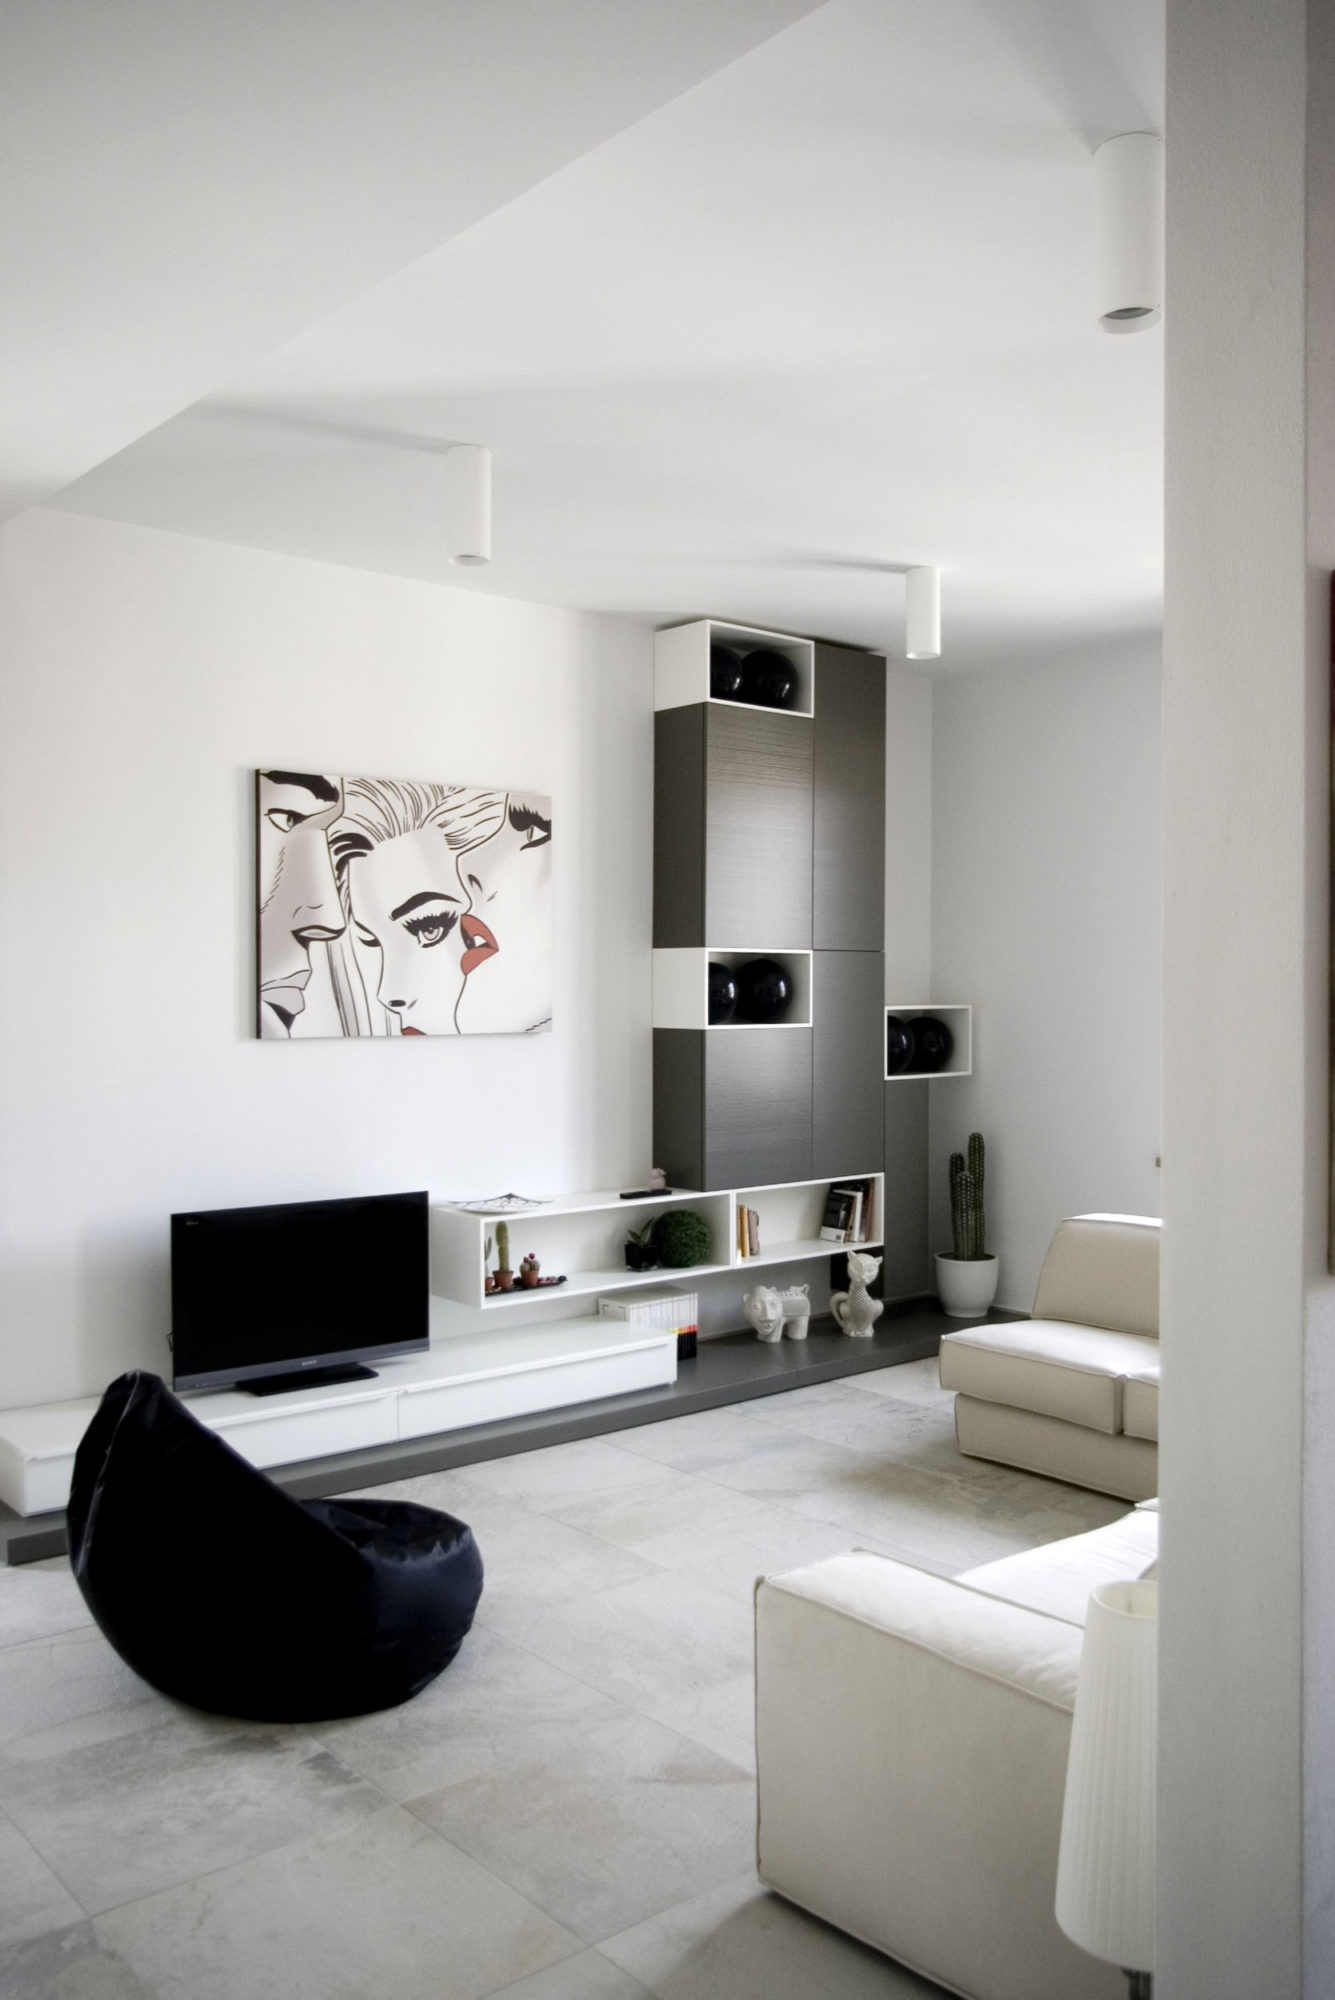 Minimalist interior by msx2 architettura for Contemporary minimalist